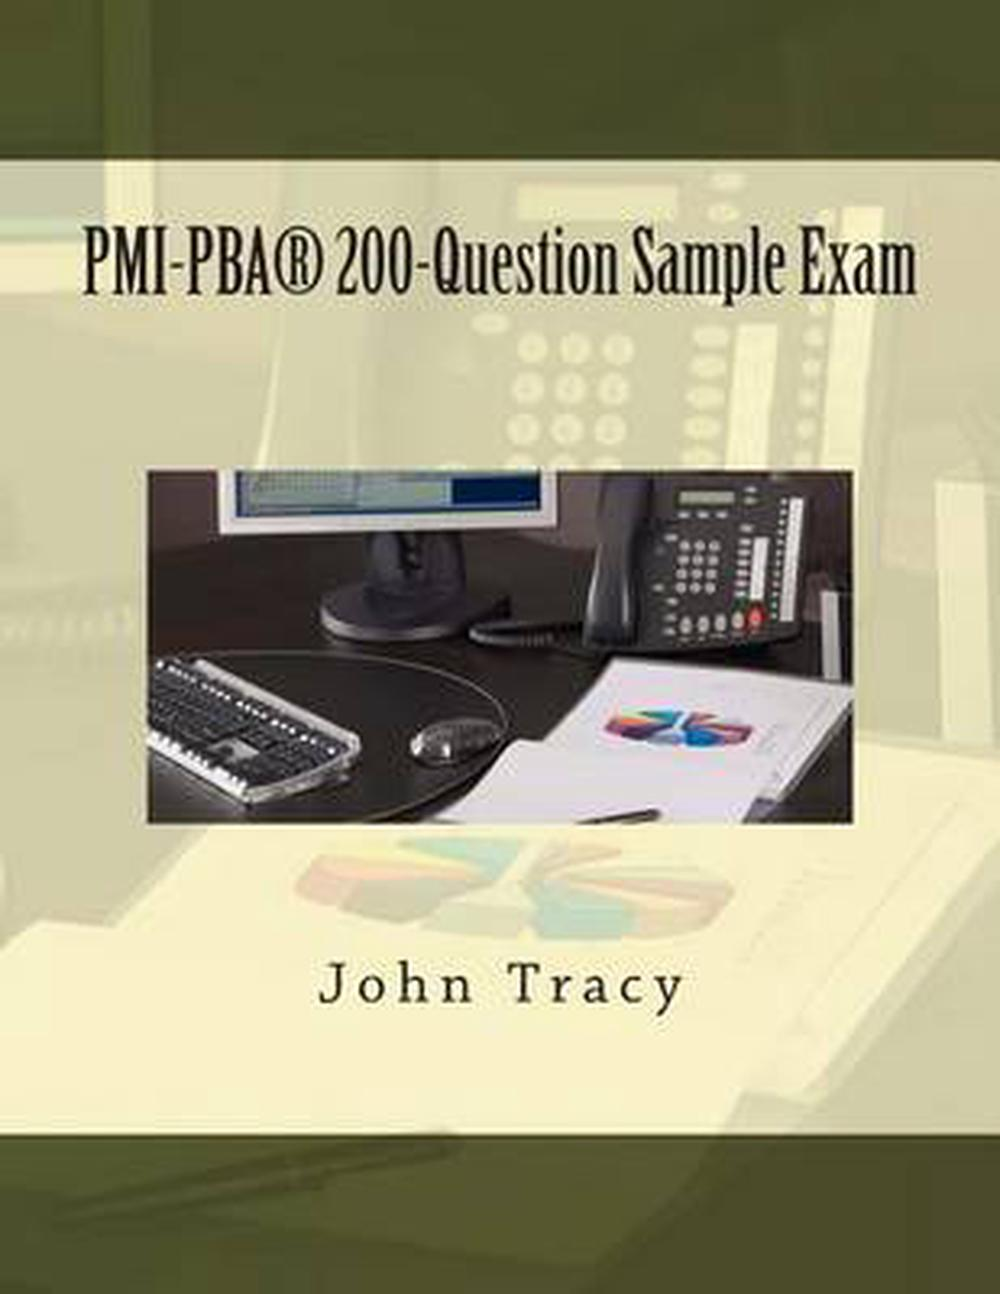 Pmi Pbar 200 Question Sample Exam By John Tracy English